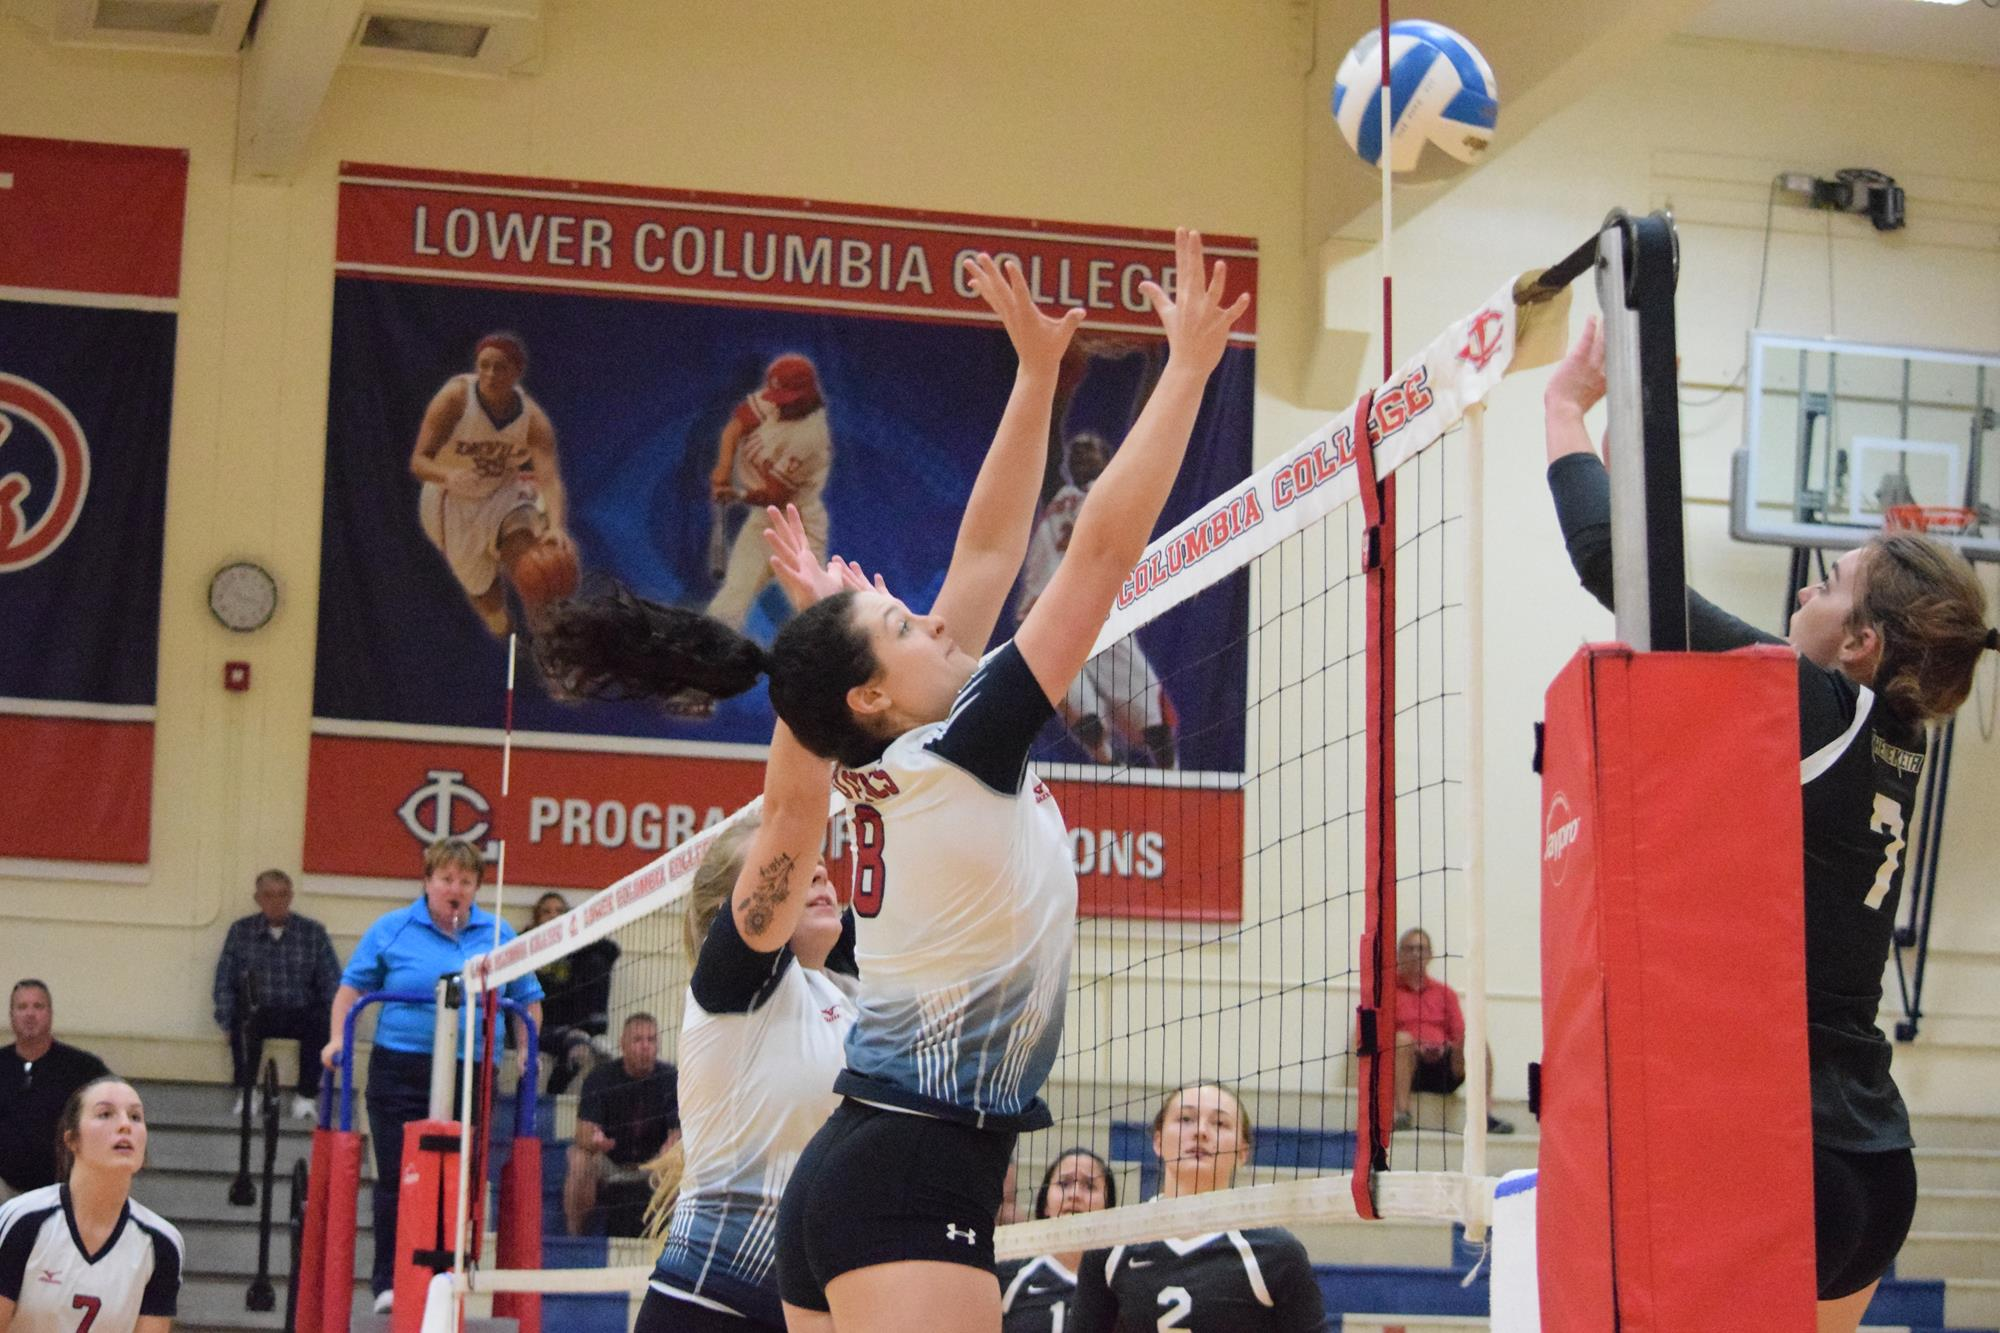 Maria Teed Women S Volleyball Lower Columbia College Athletics